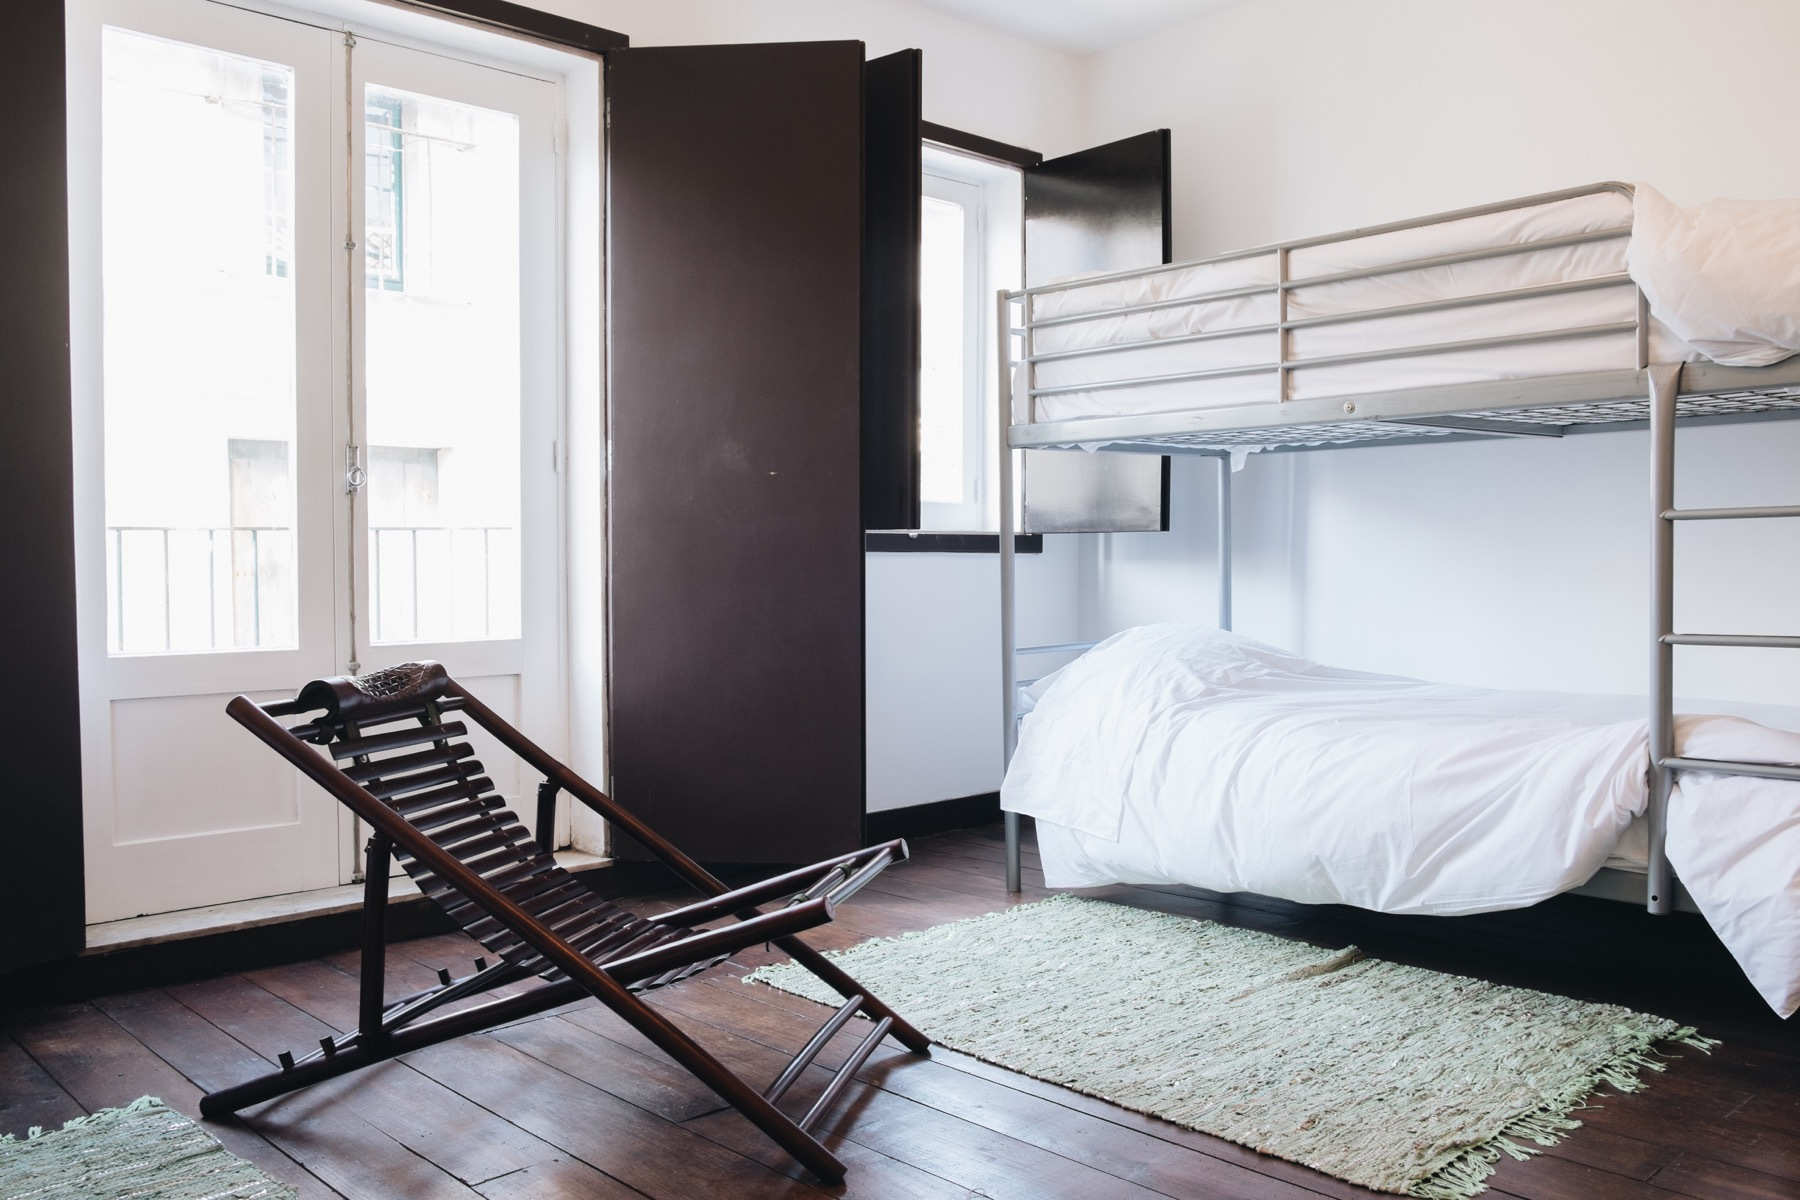 Bed Community Room